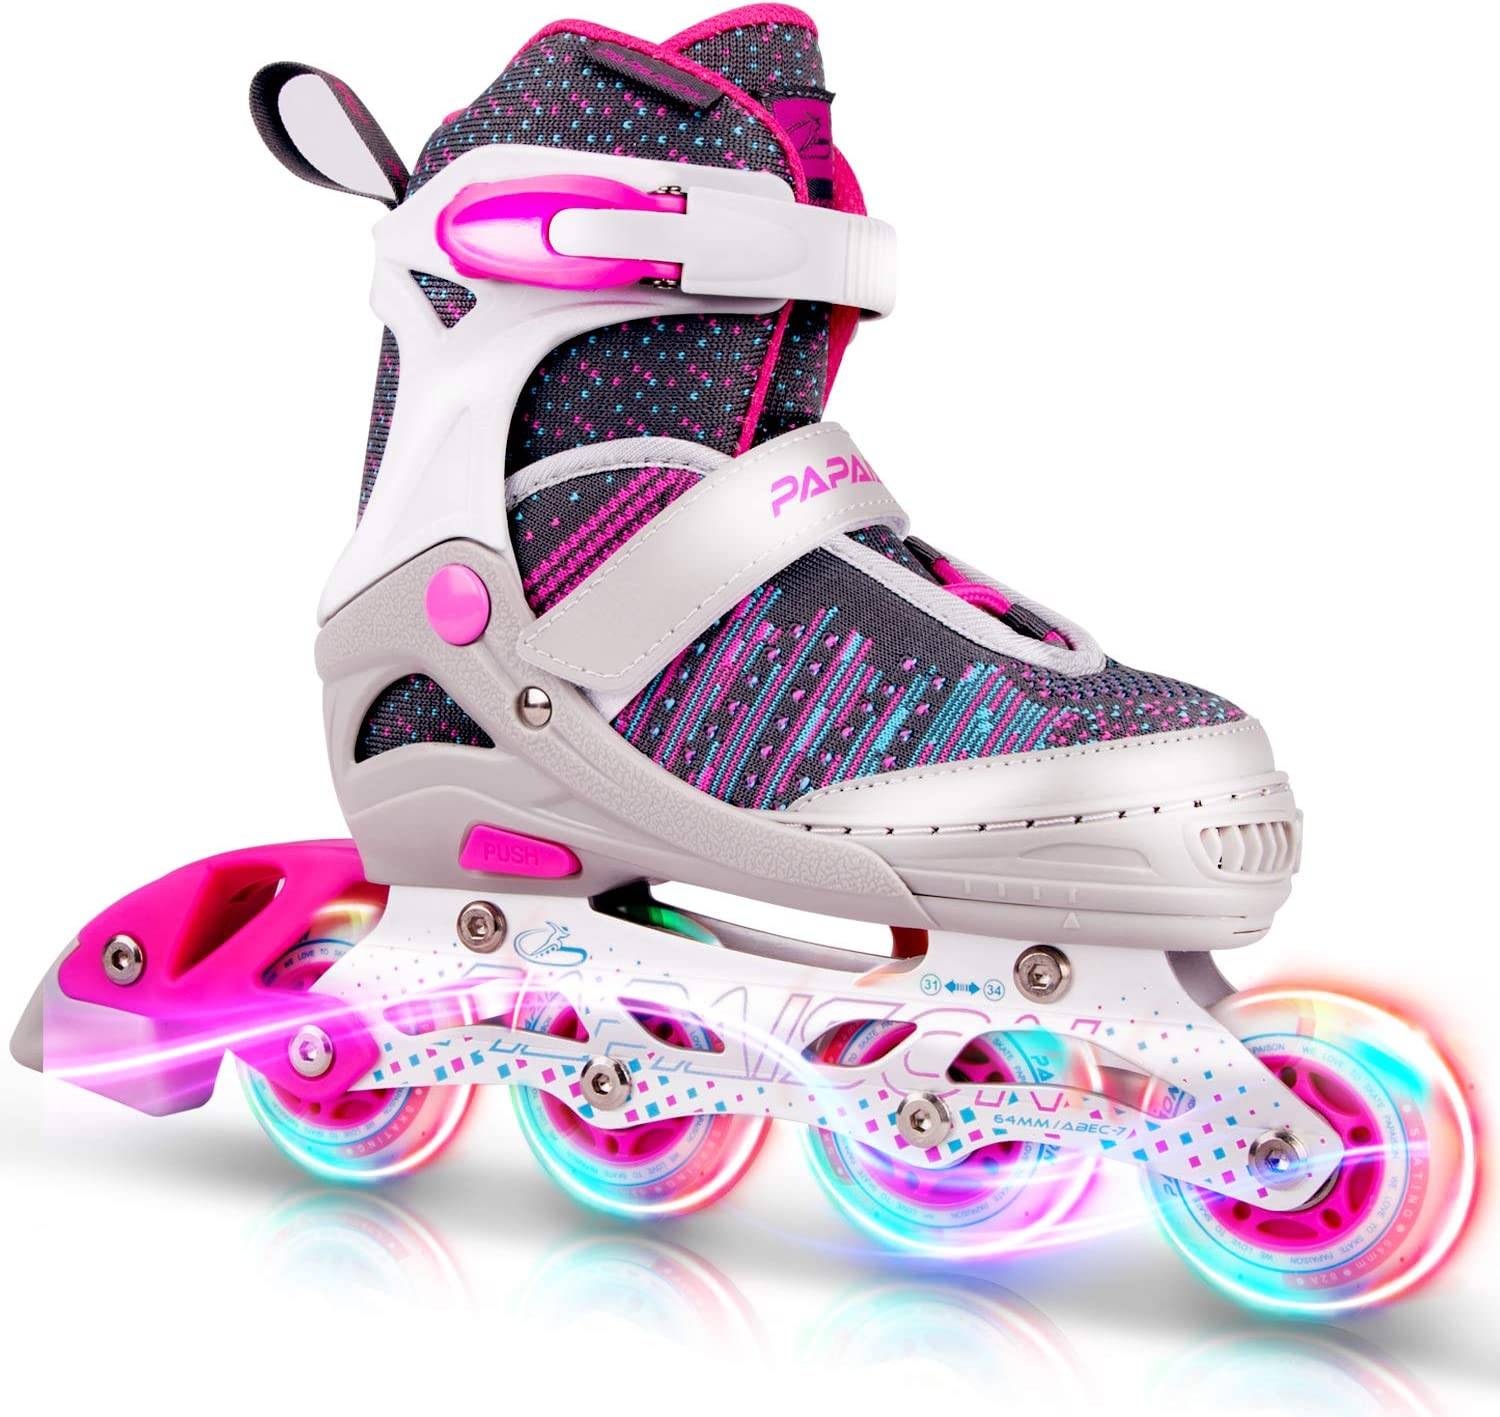 PAPAISON Girls and Boys Adjustable Inline Skates with Light up Wheels, Roller Blades for Kids and Youth, Women and Men